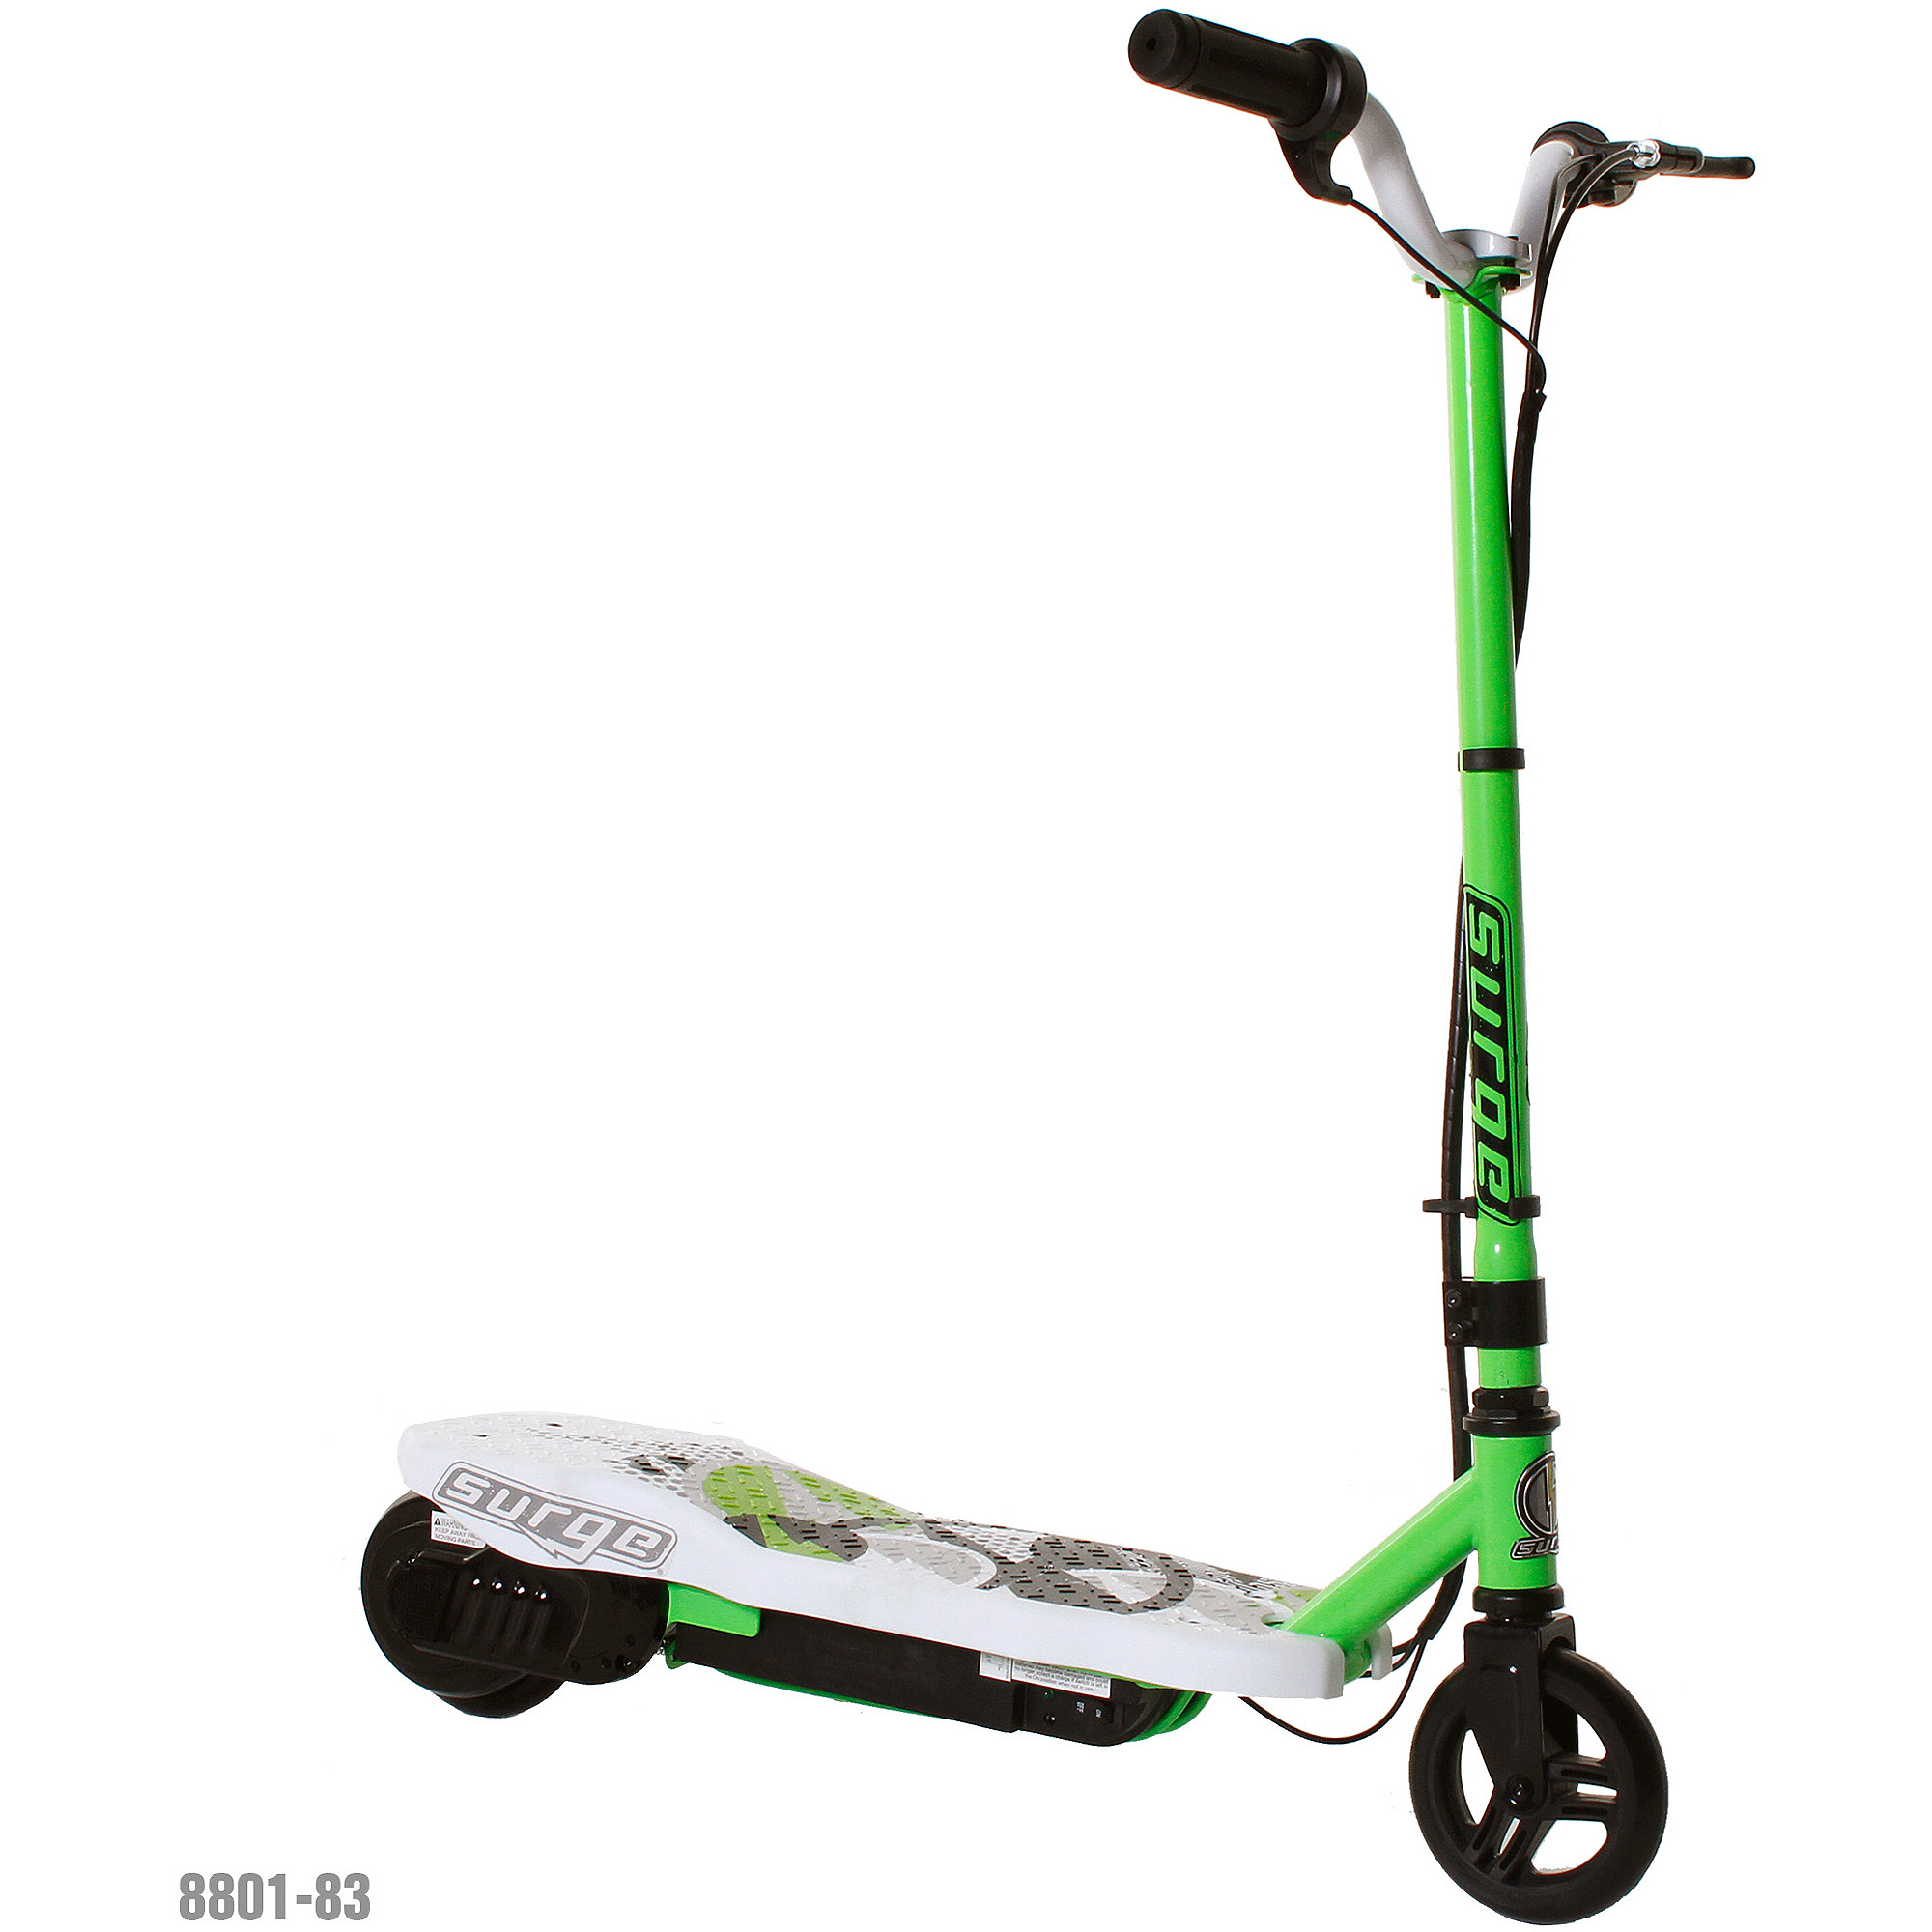 Surge Boys' 12V Electric Scooter, Green